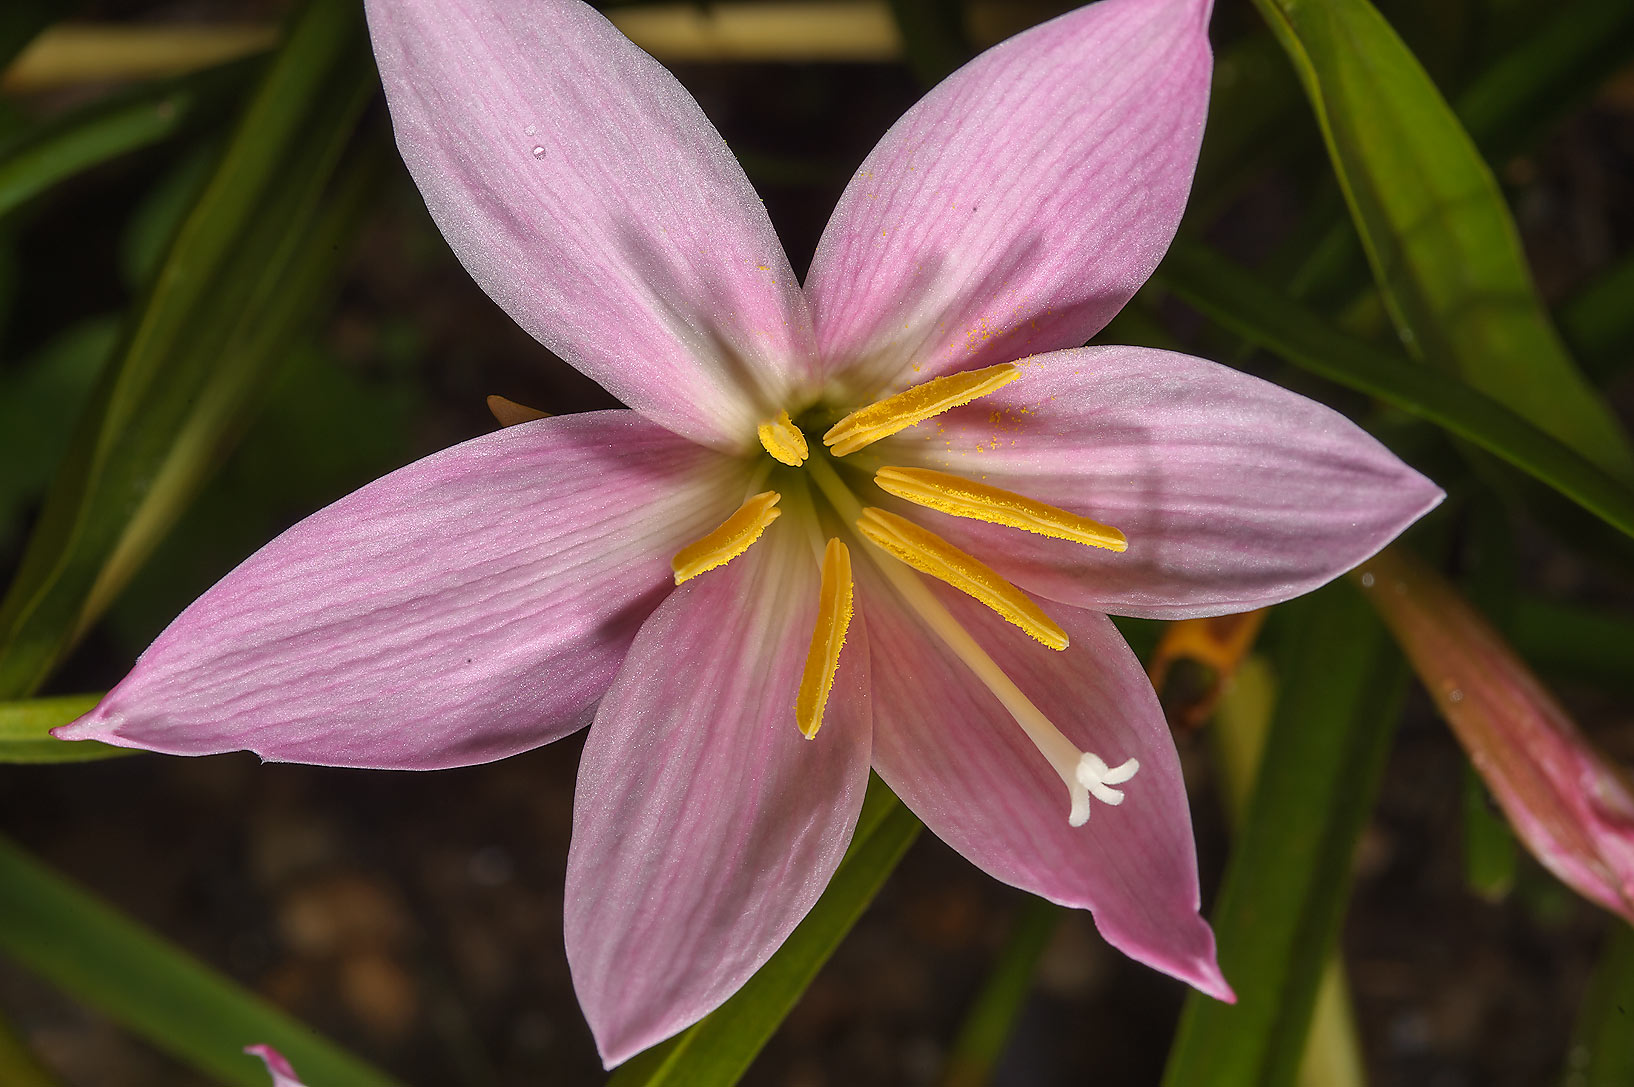 Pink rain lily in Mercer Arboretum and Botanical Gardens. Humble (Houston area), Texas